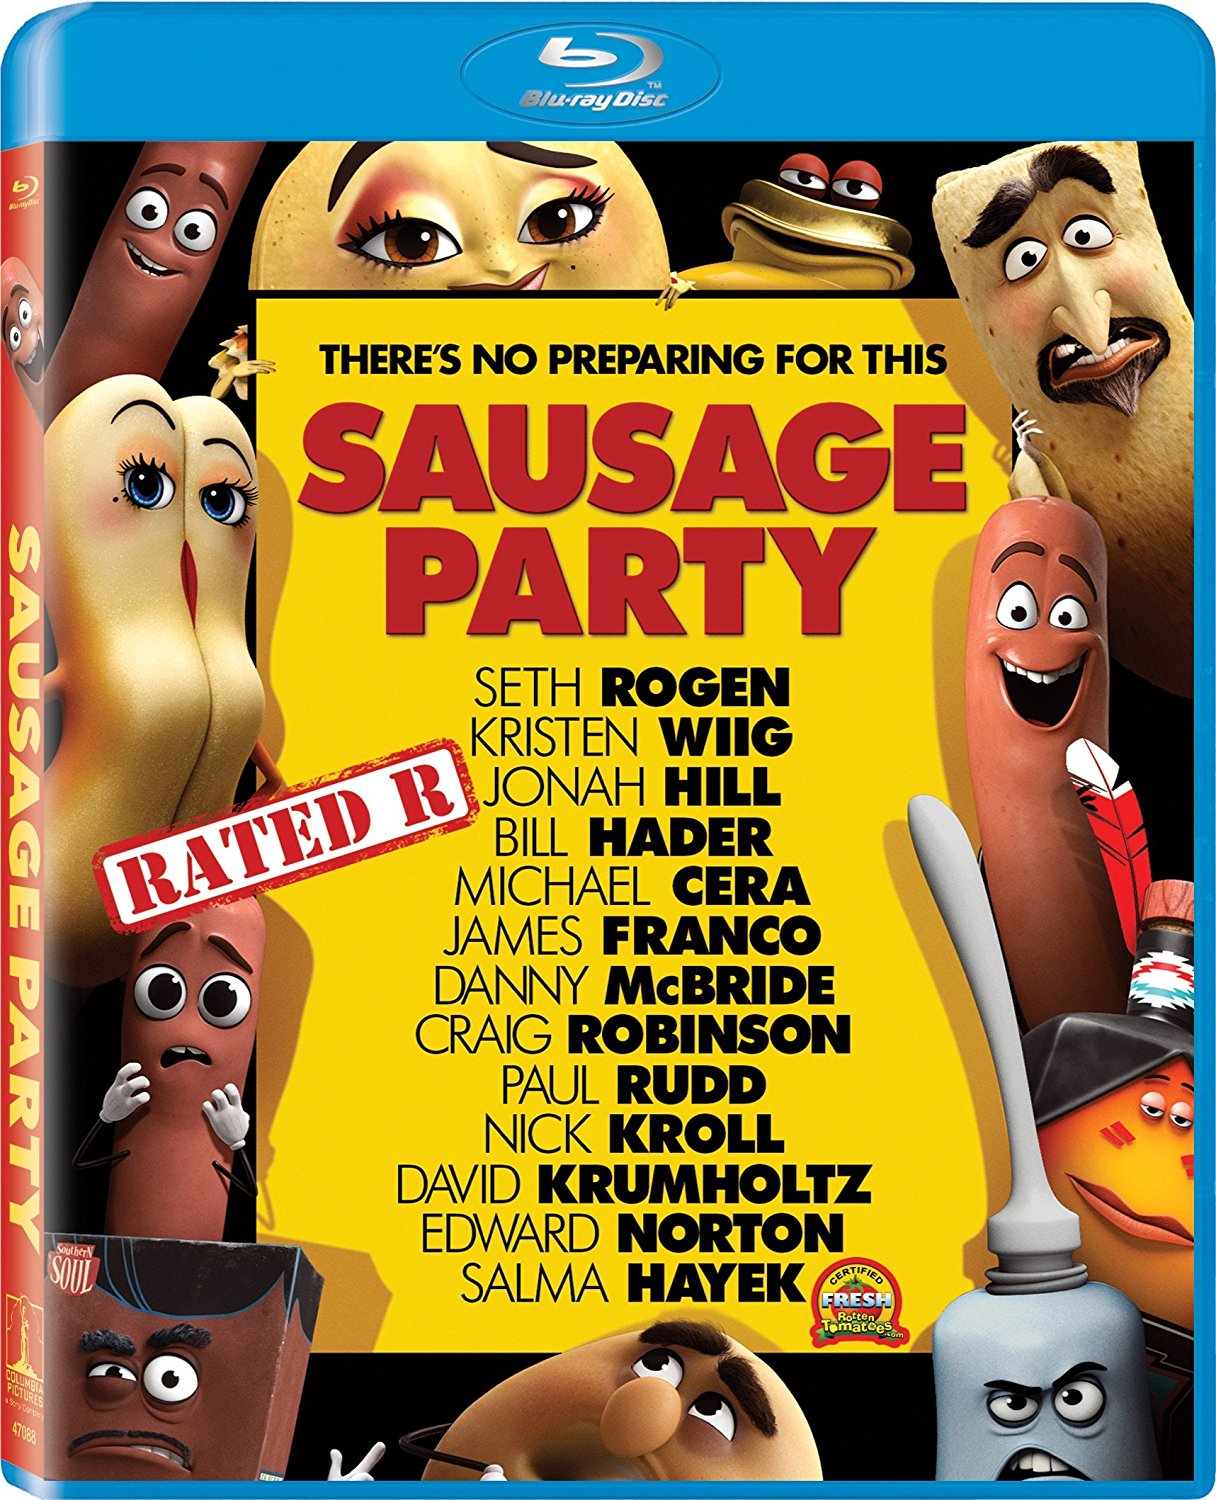 Sausage Party out on DVD and Blu-ray